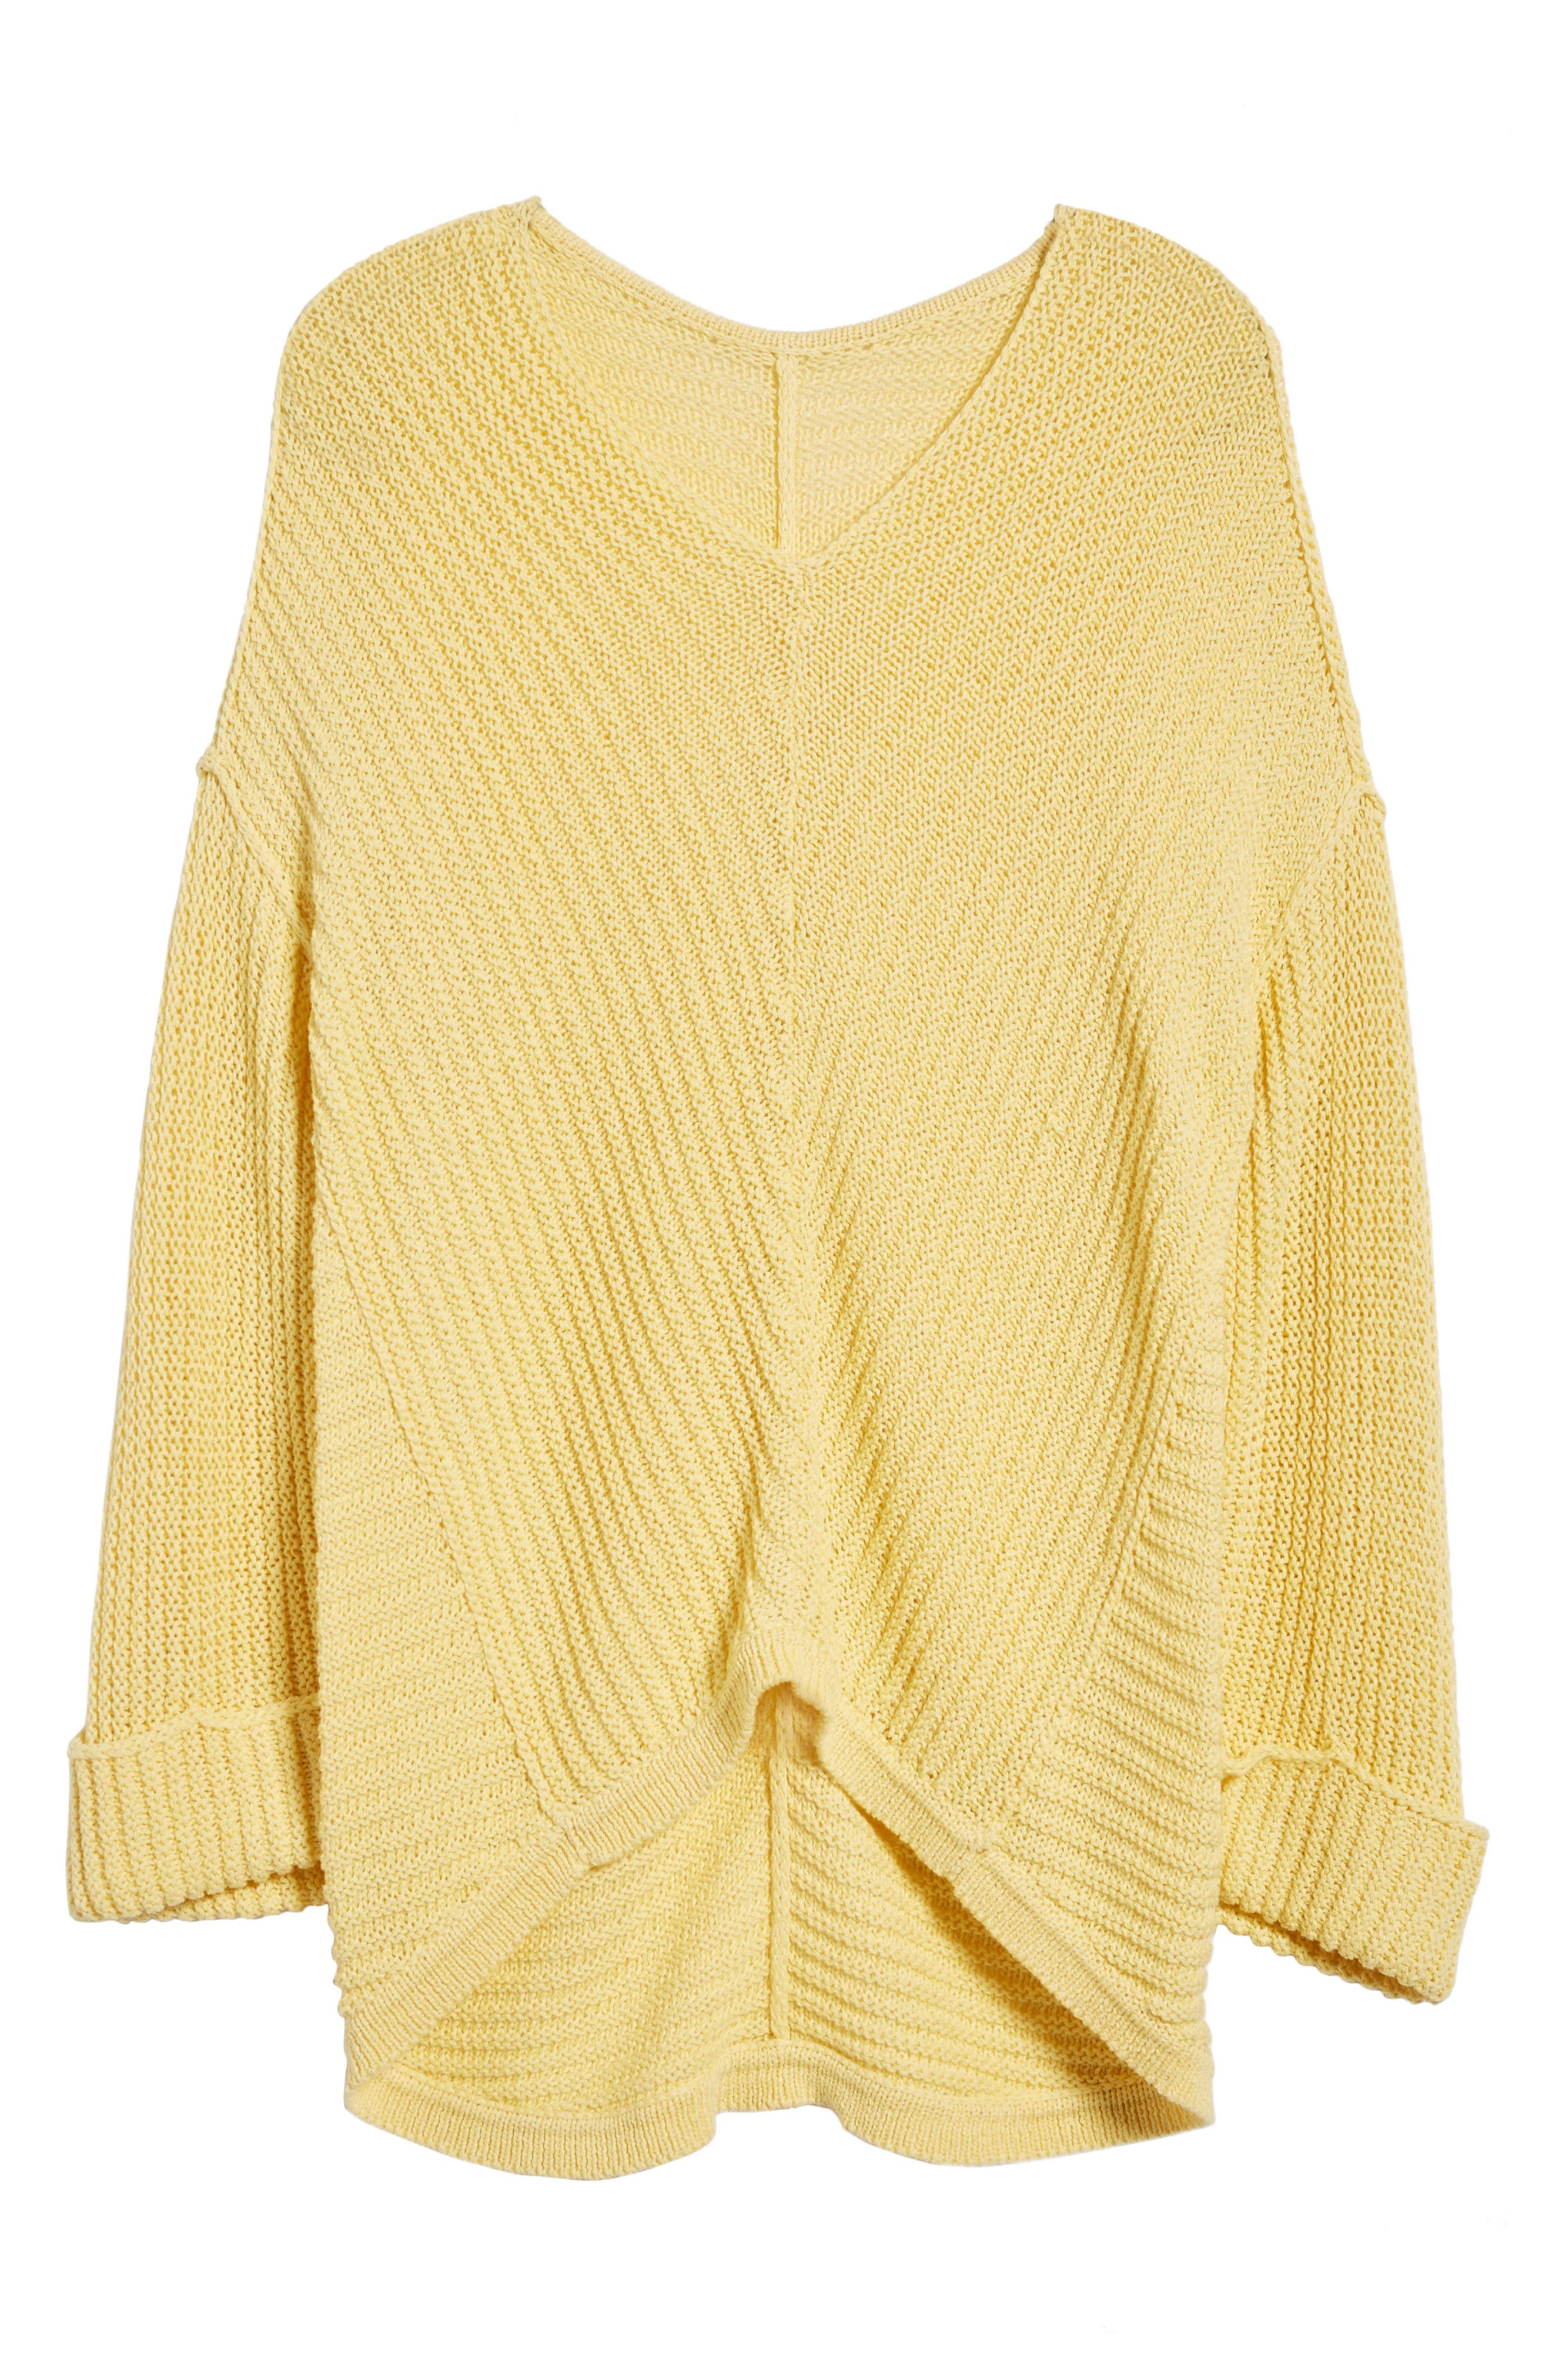 Cuffed Sleeve Sweater,                             Alternate thumbnail 23, color,